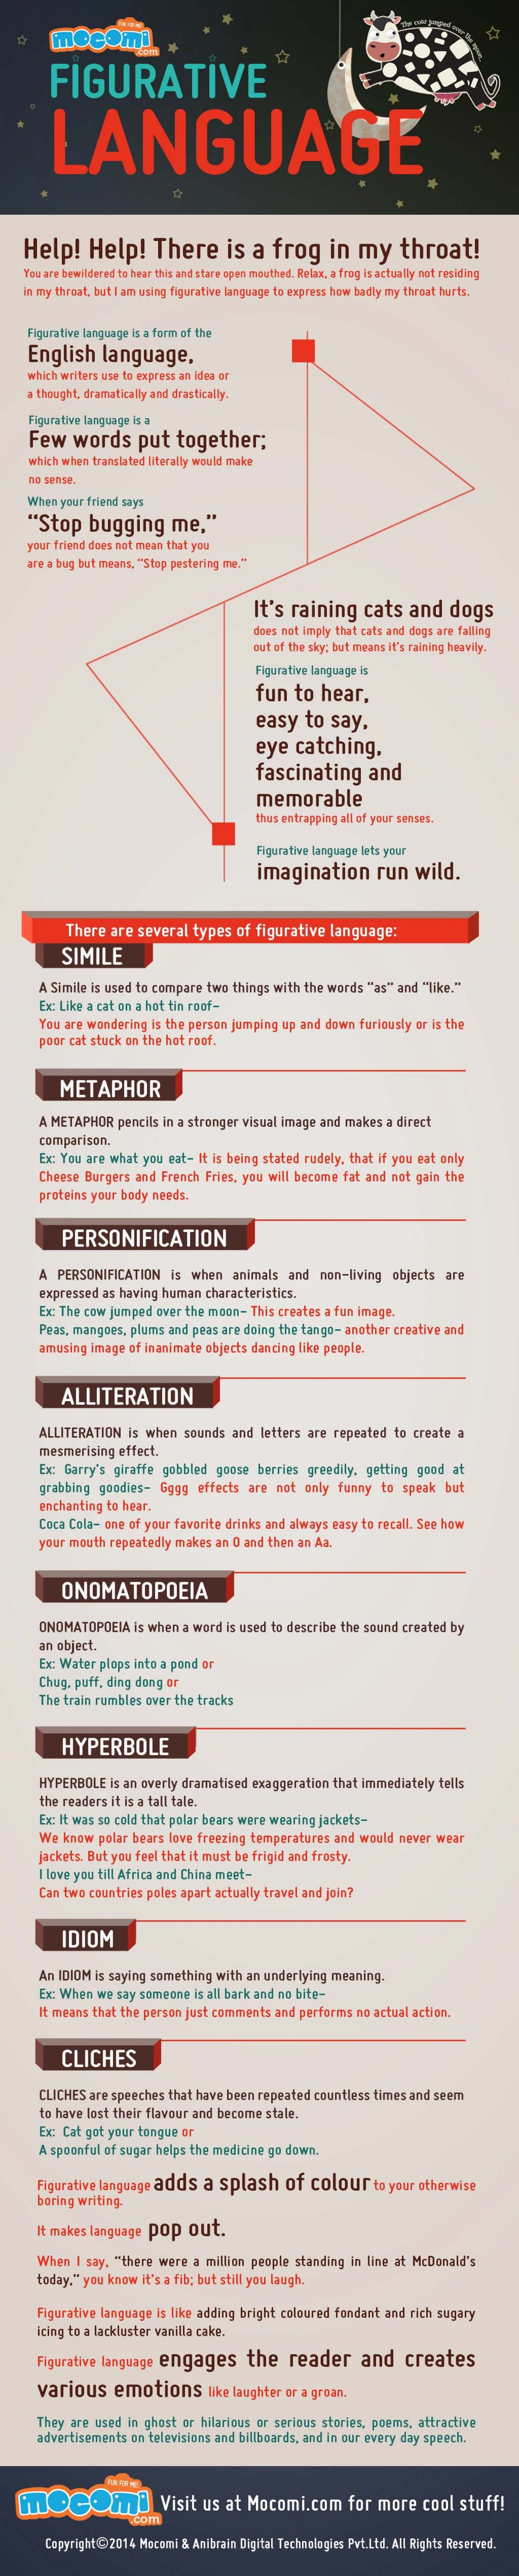 Visual Mocomi Figurative Language Infographic This Infographic Doesn T Just Give Examples Of